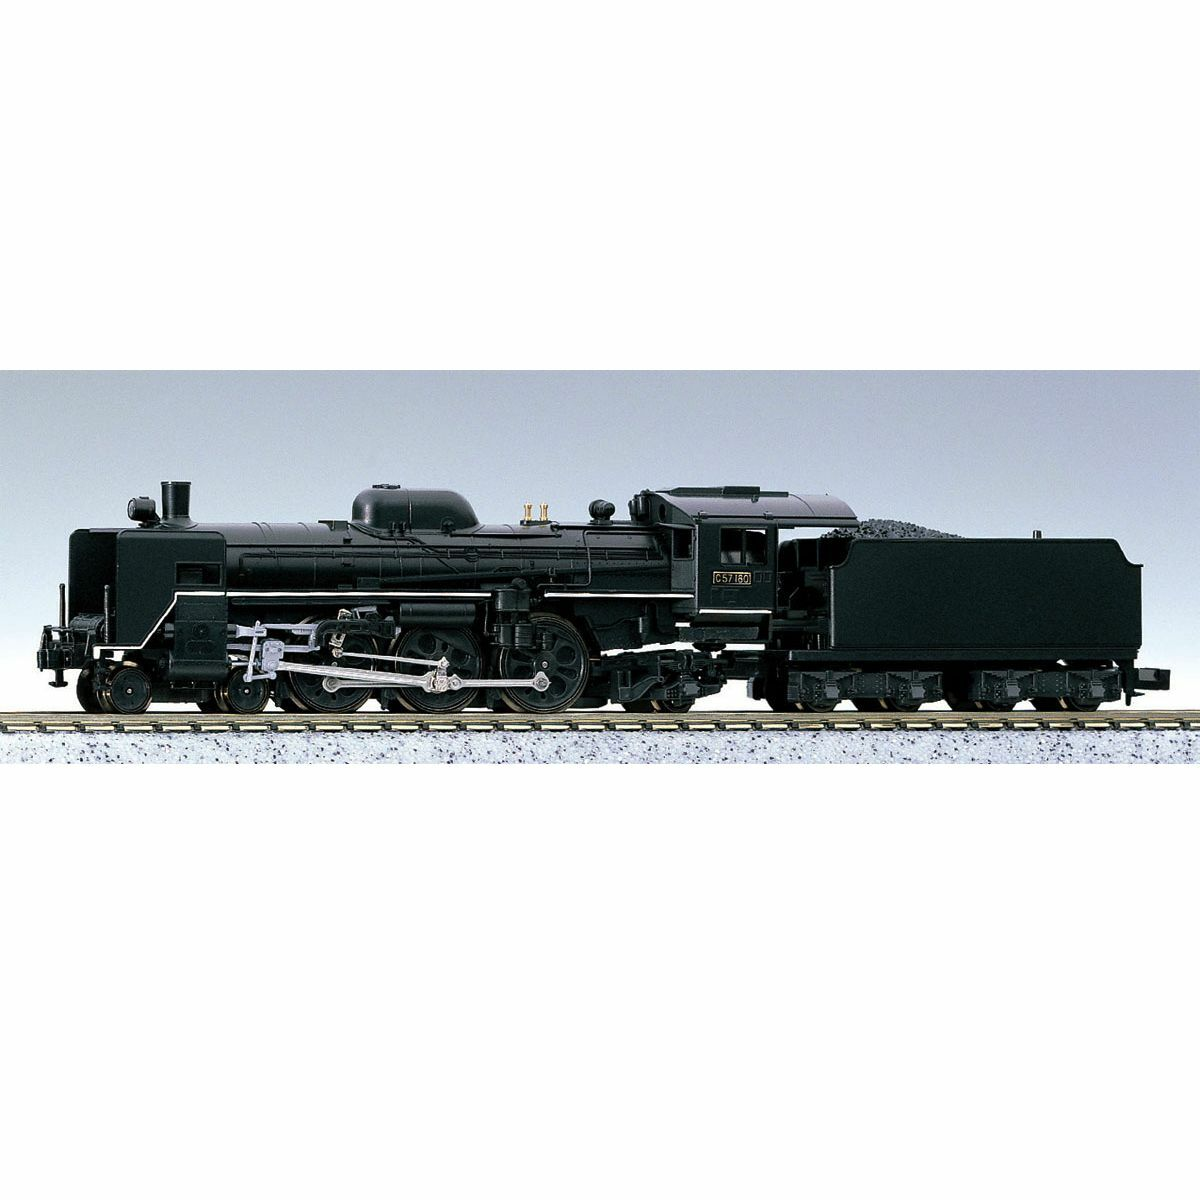 Kato Kato Kato 2018 Steam Locomotive 4-6-2 Type C57-180 - N ca8e6f